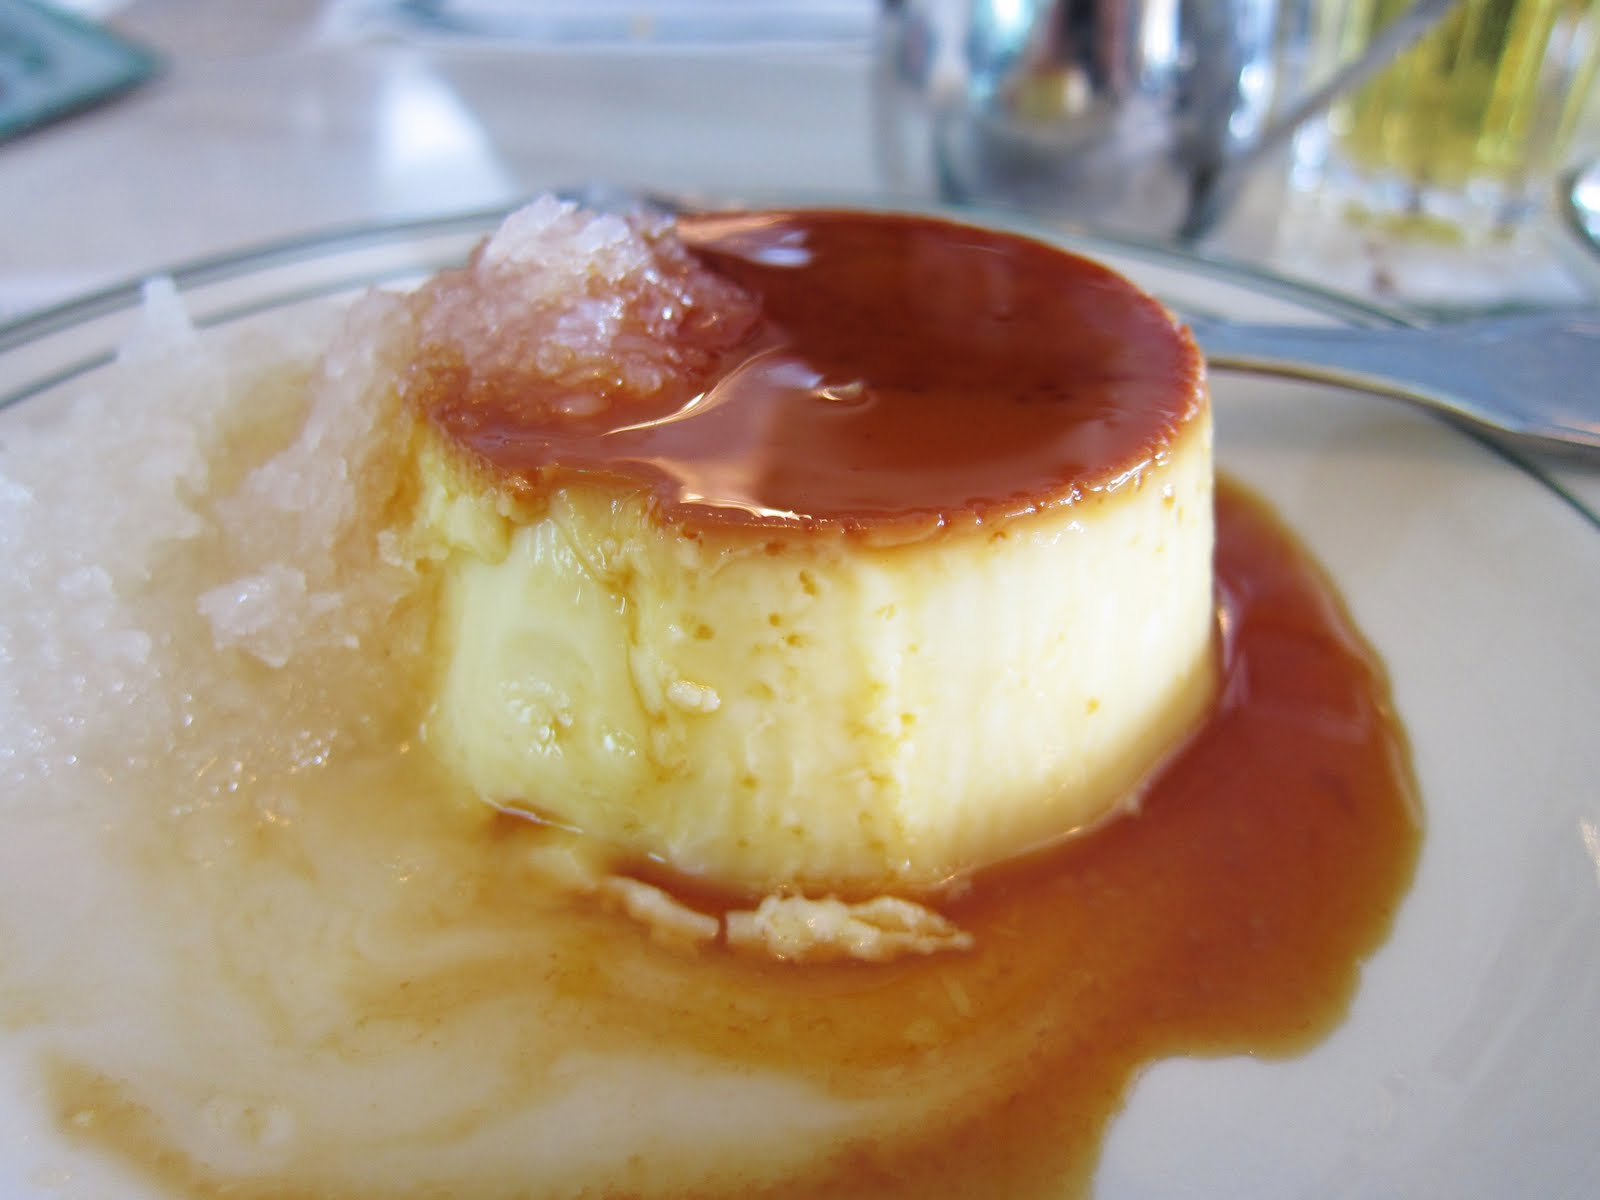 Coconut Flan The flan with coconut,